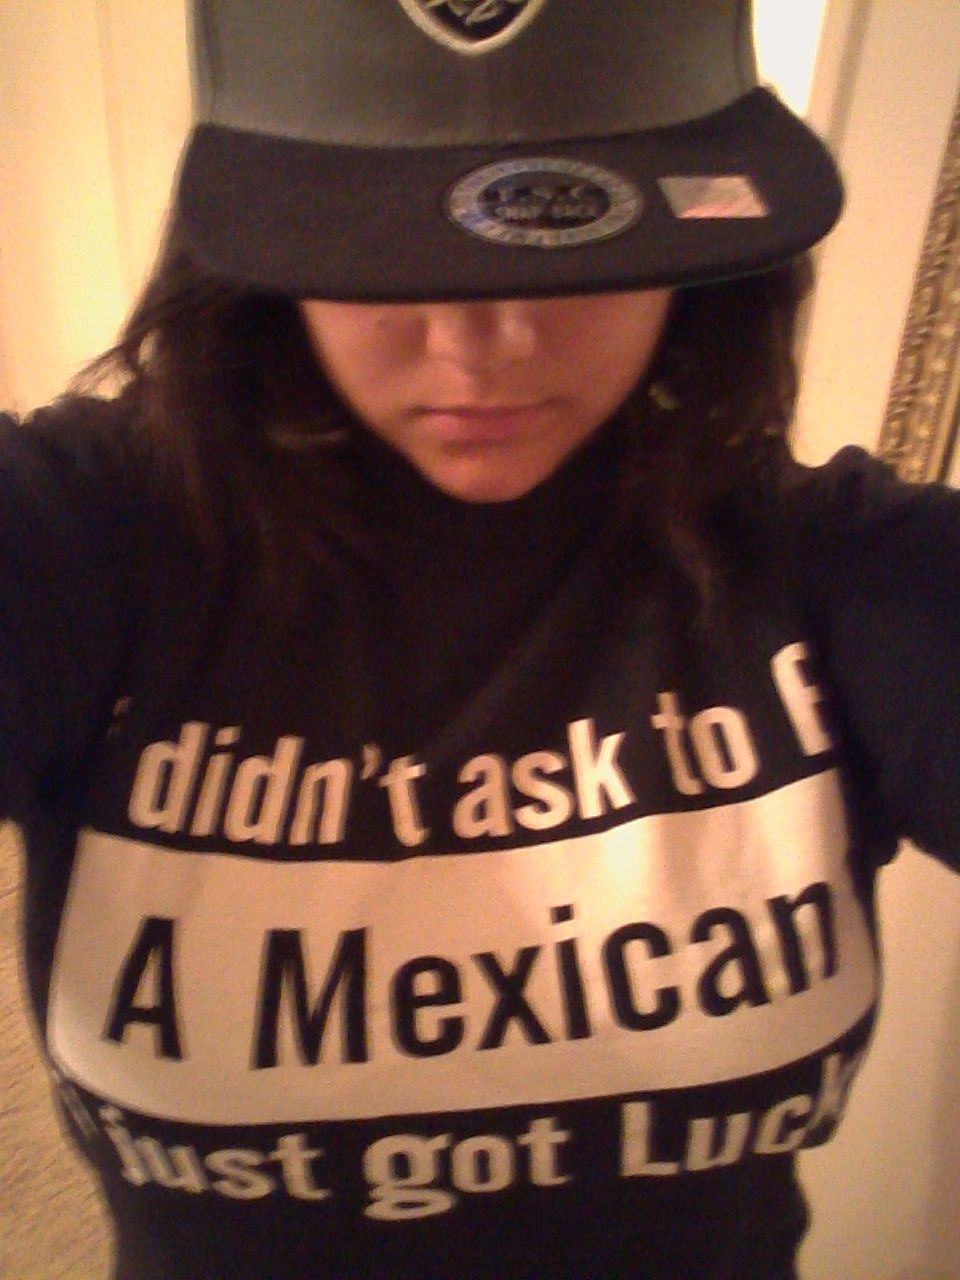 70a8217de6 just me in my mexican pride shirt XD it says